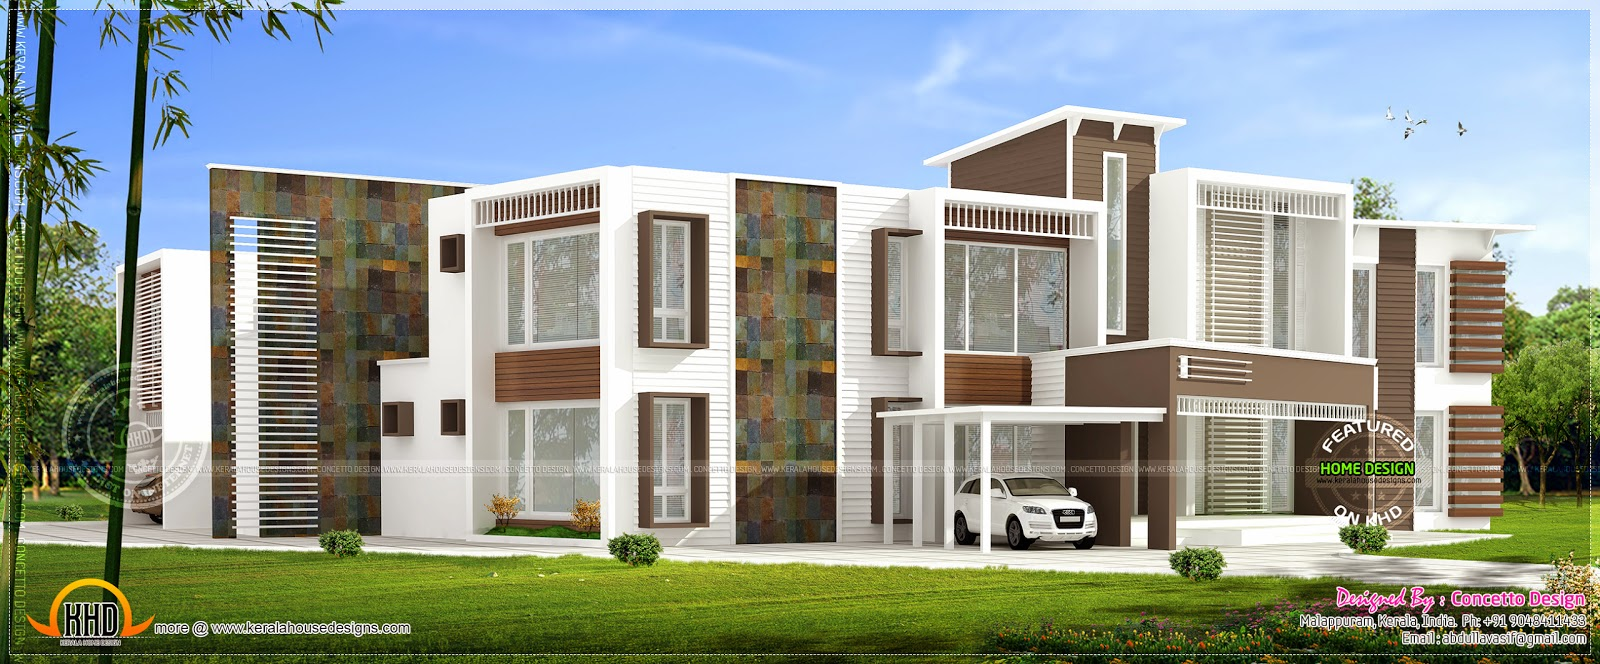 Superb Super Luxury Contemporary Kerala Home Design And Floor Plans Largest Home Design Picture Inspirations Pitcheantrous